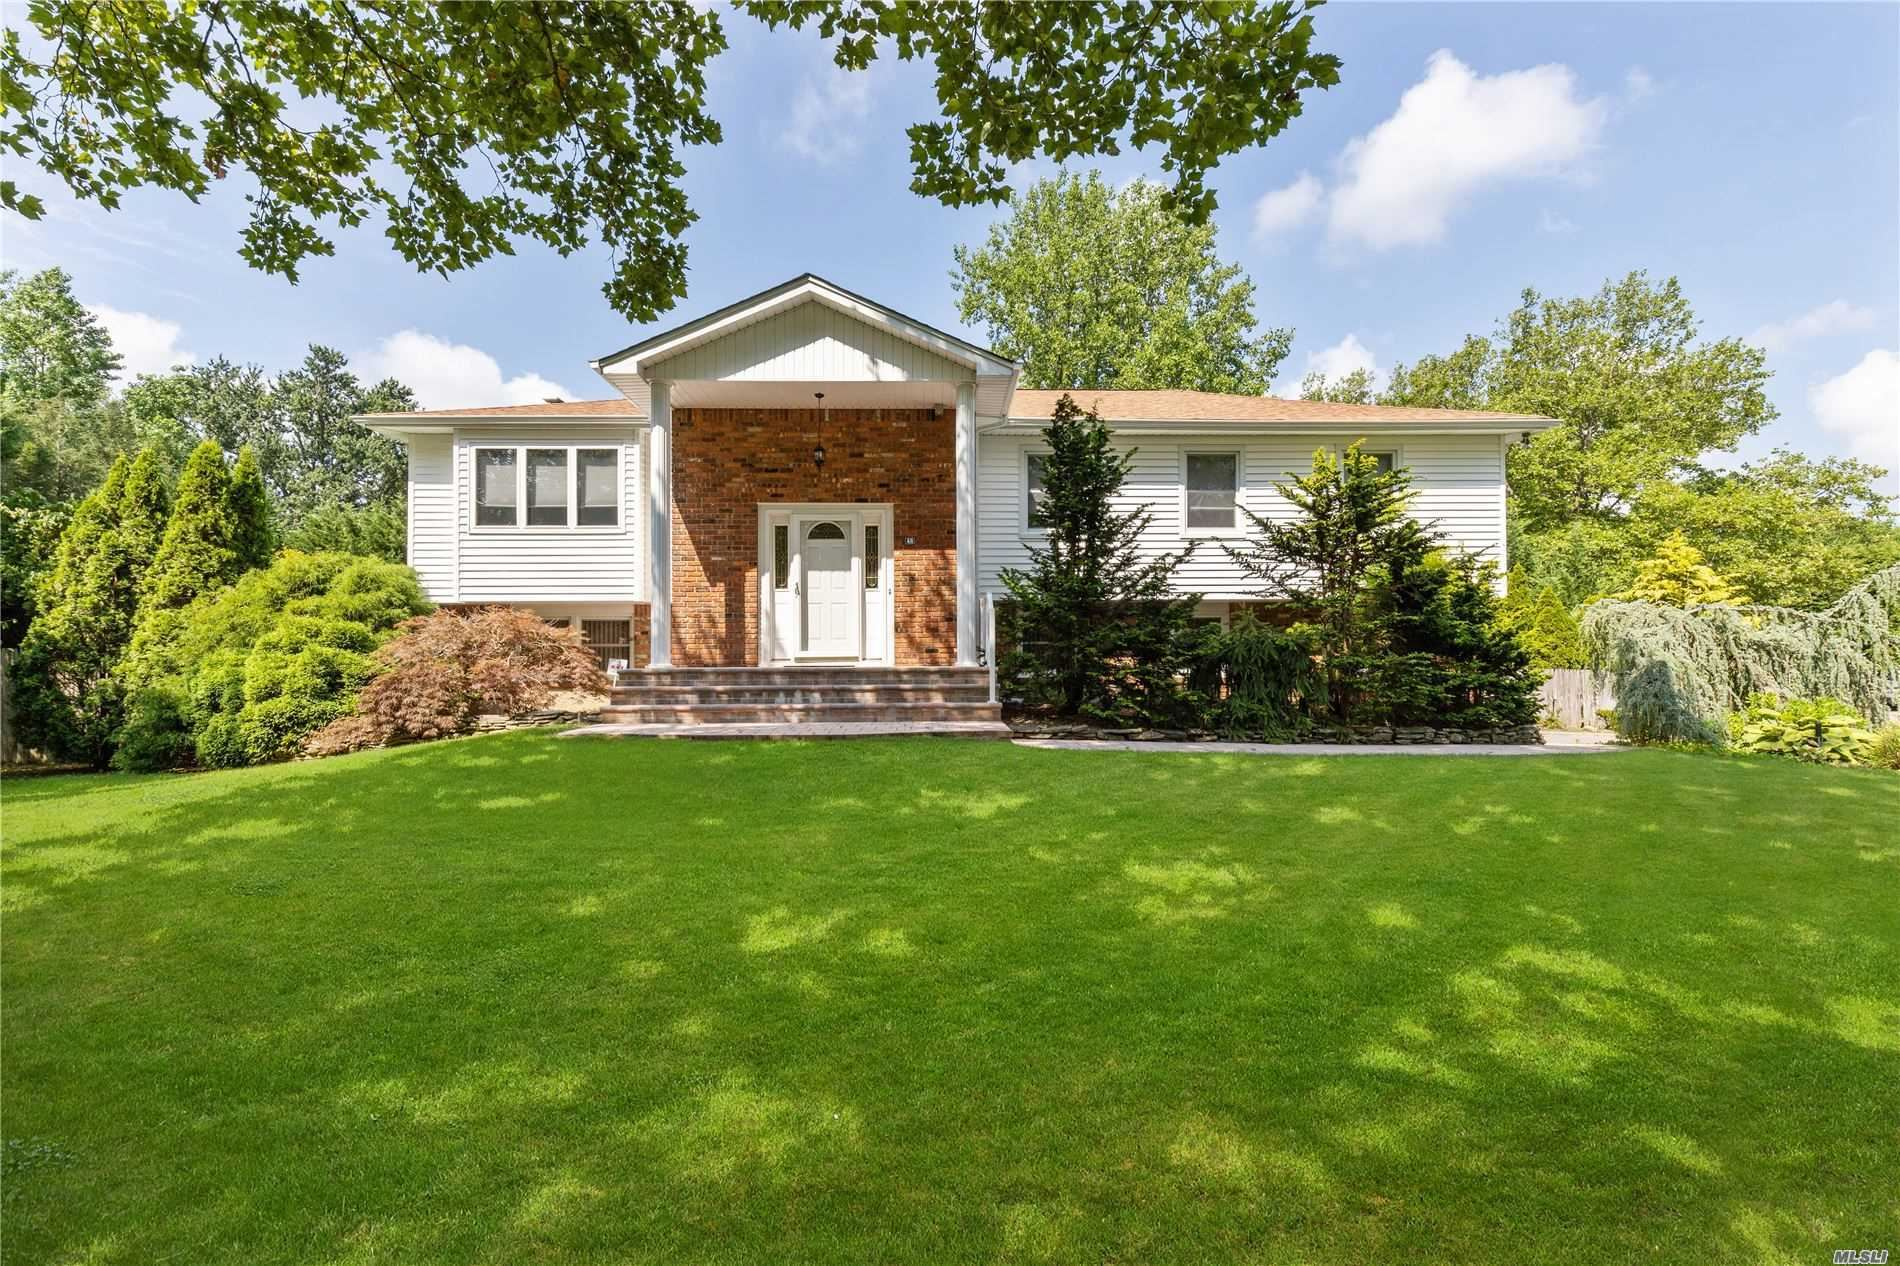 48 Greenvale Drive, East Northport, NY 11731 - MLS#: 3237975